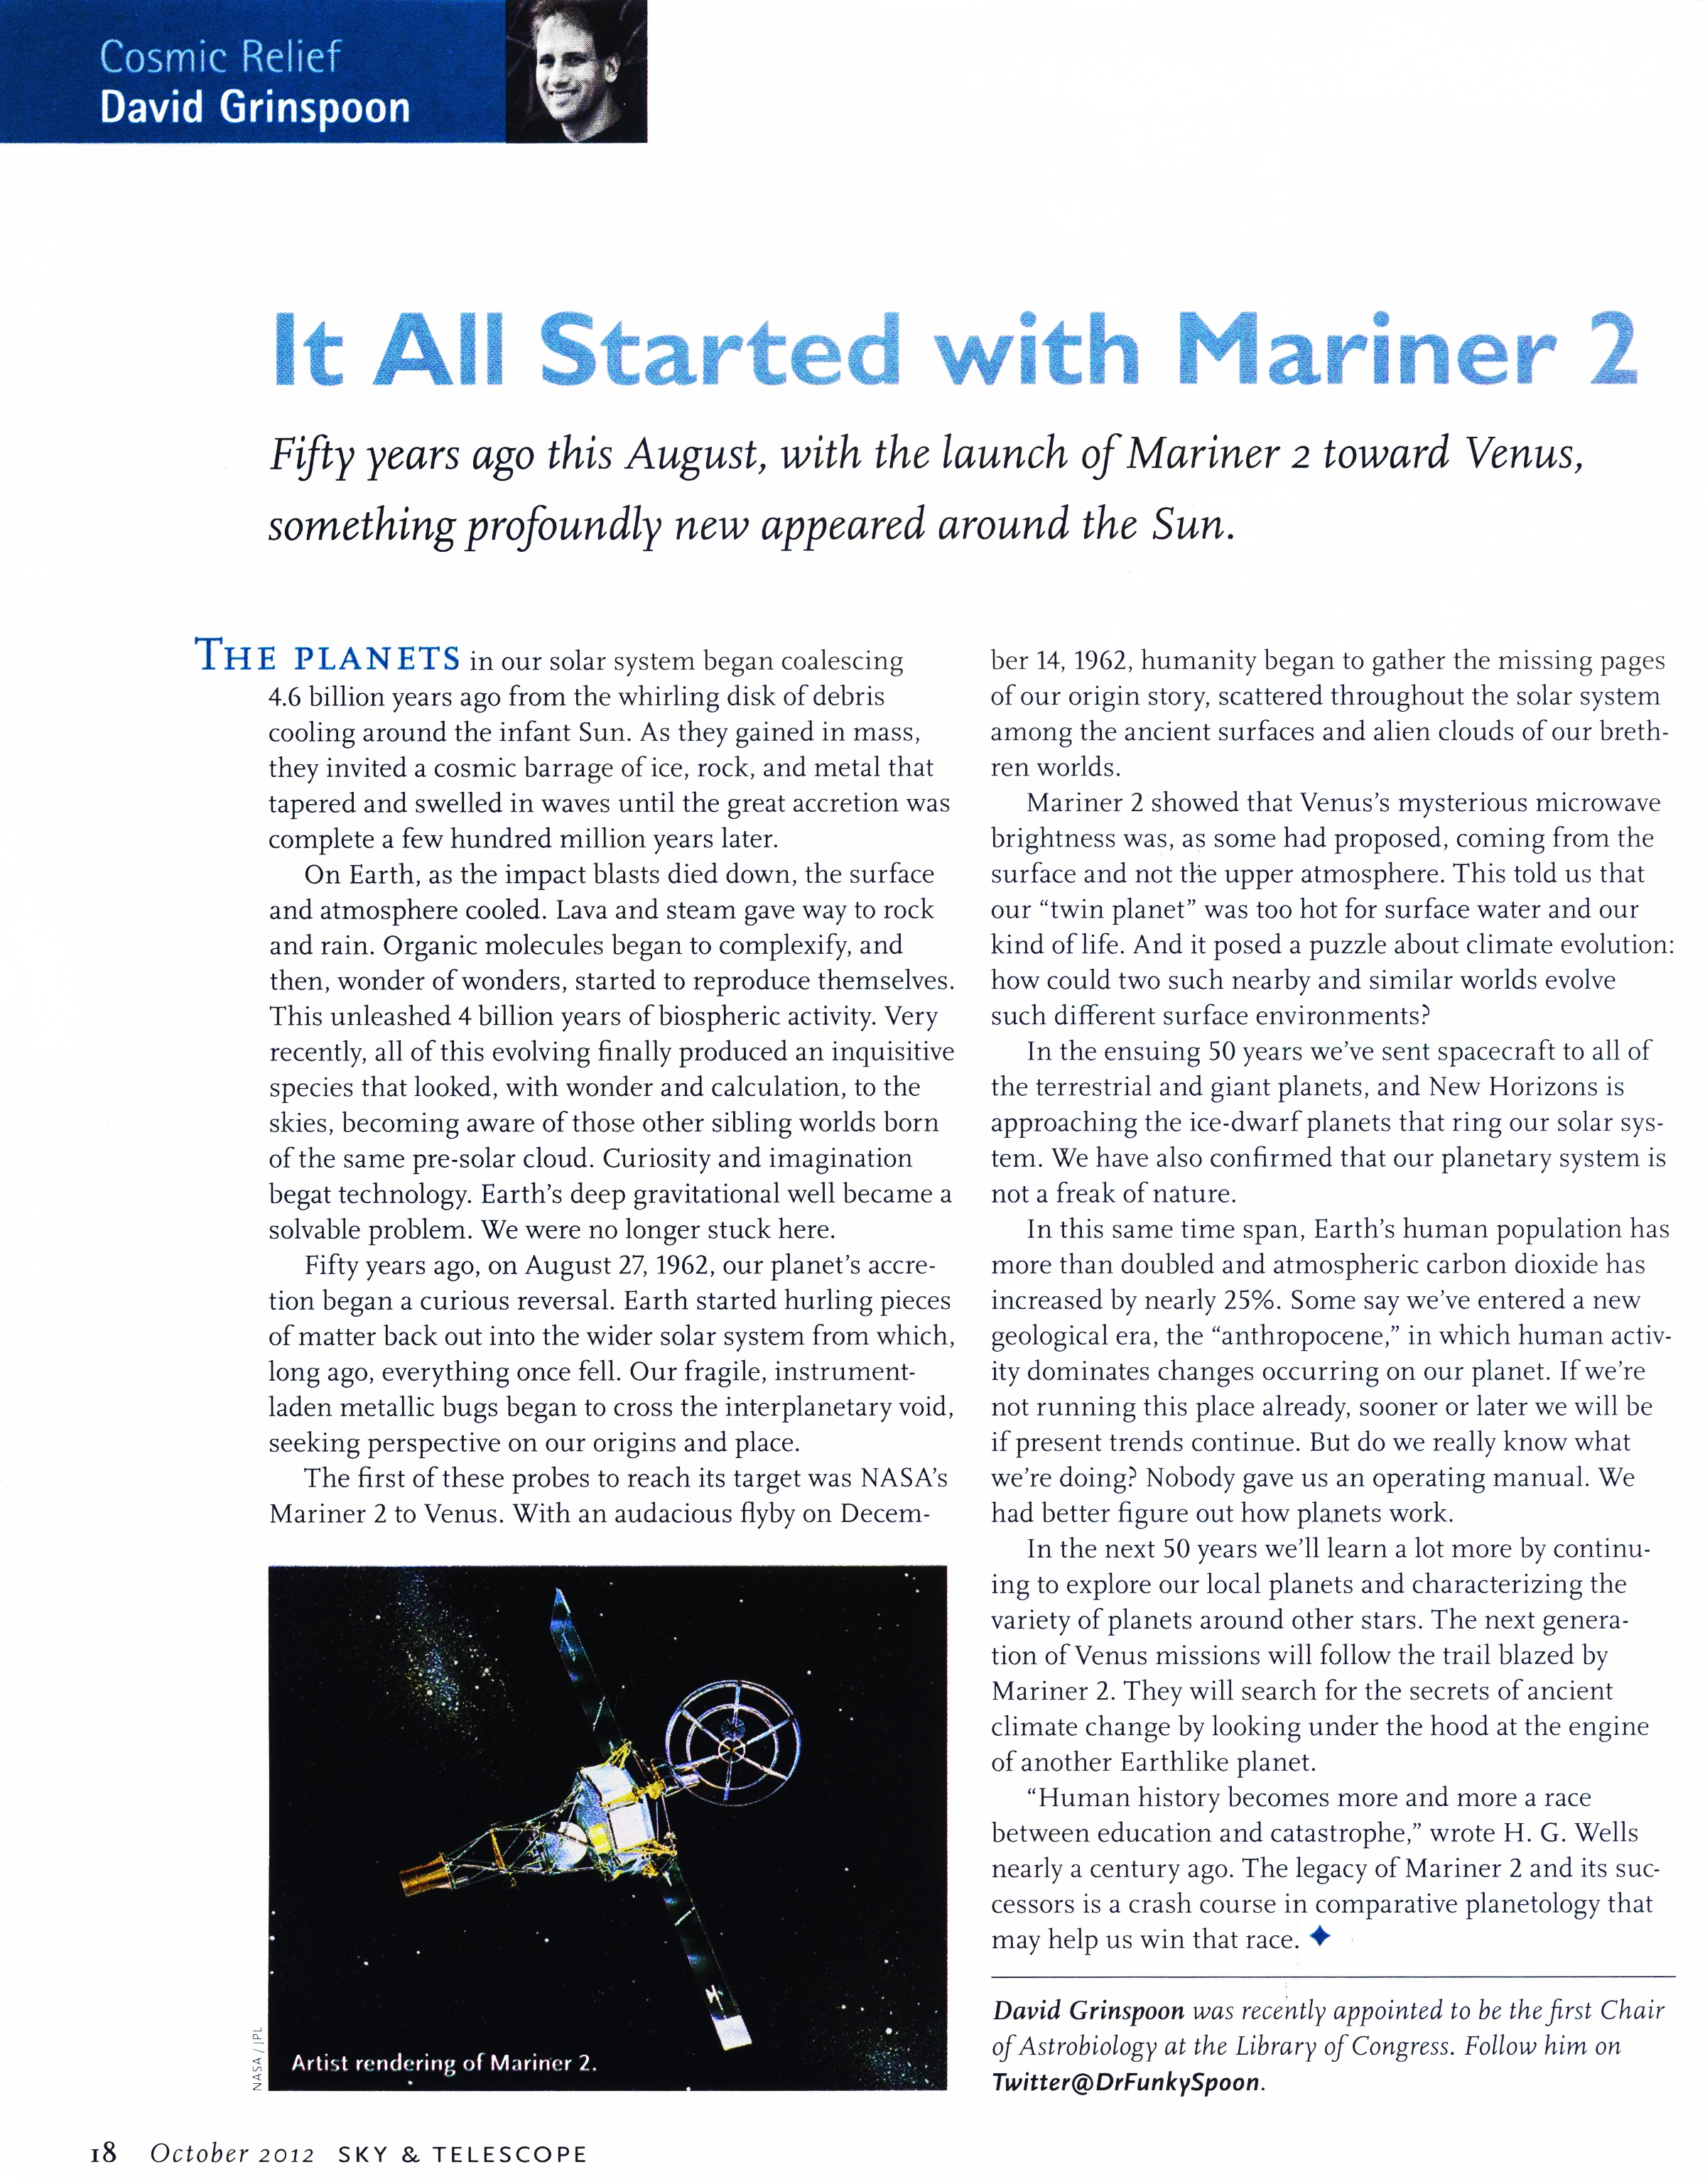 It All Started with Mariner 2